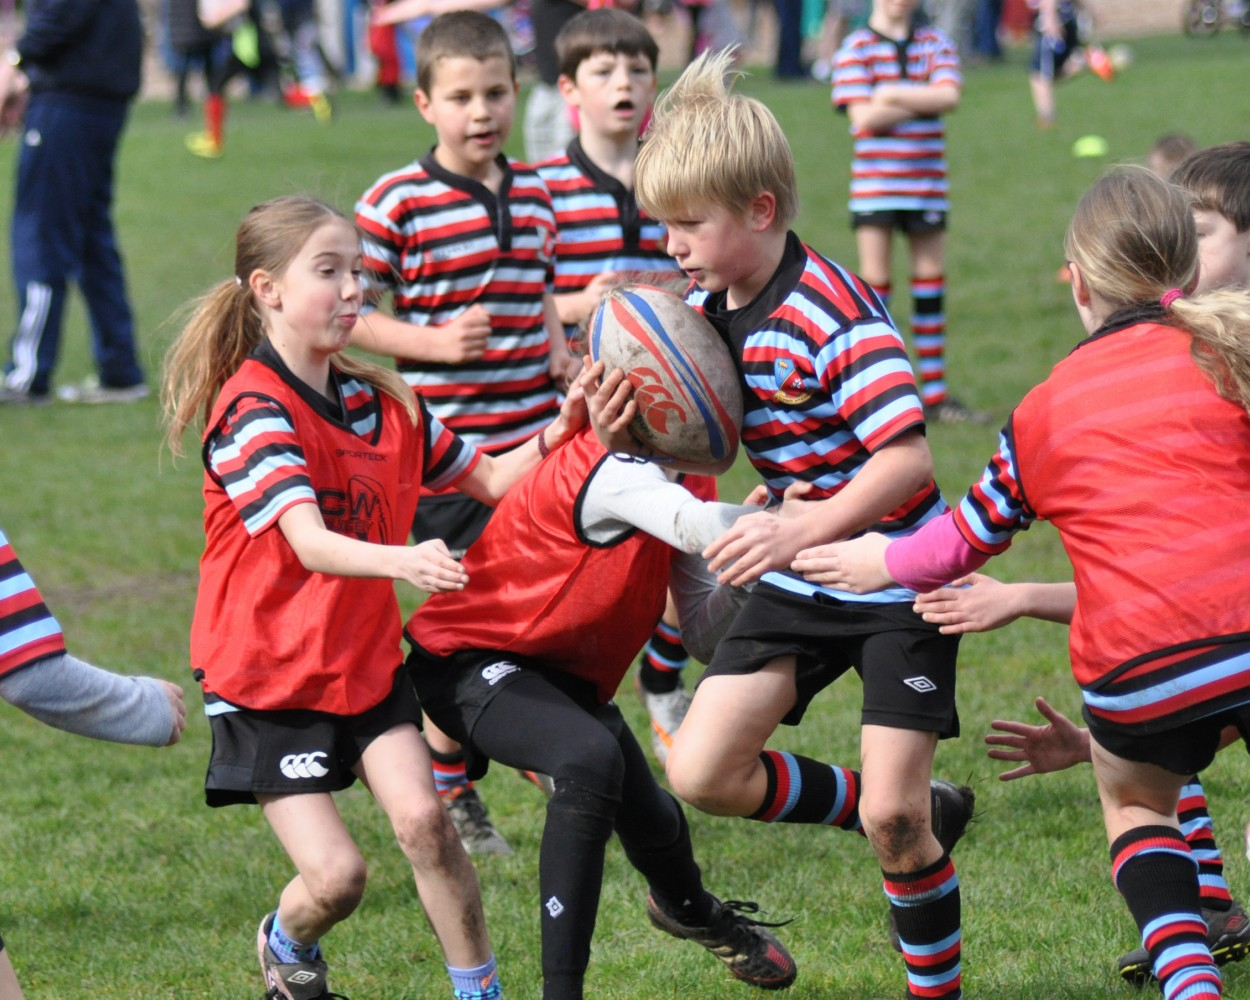 School Rugby Takes Over